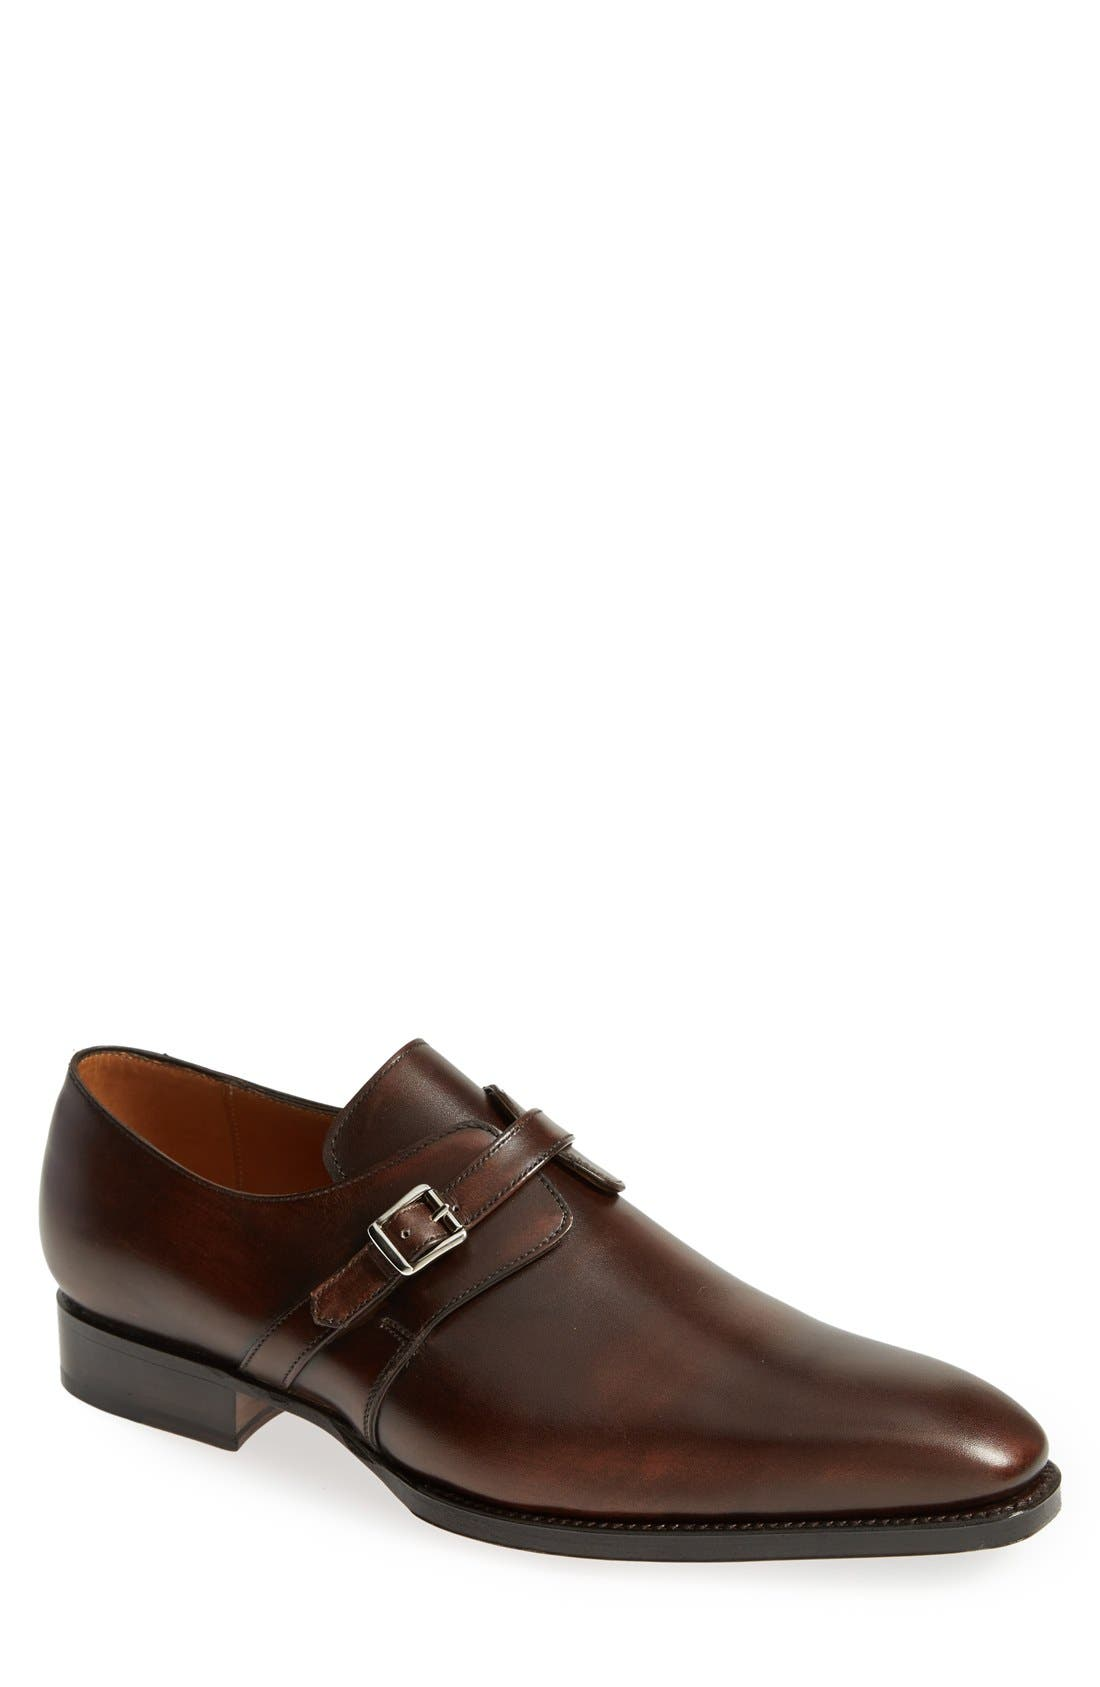 'Galway' Monk Strap Slip-On,                             Main thumbnail 1, color,                             211